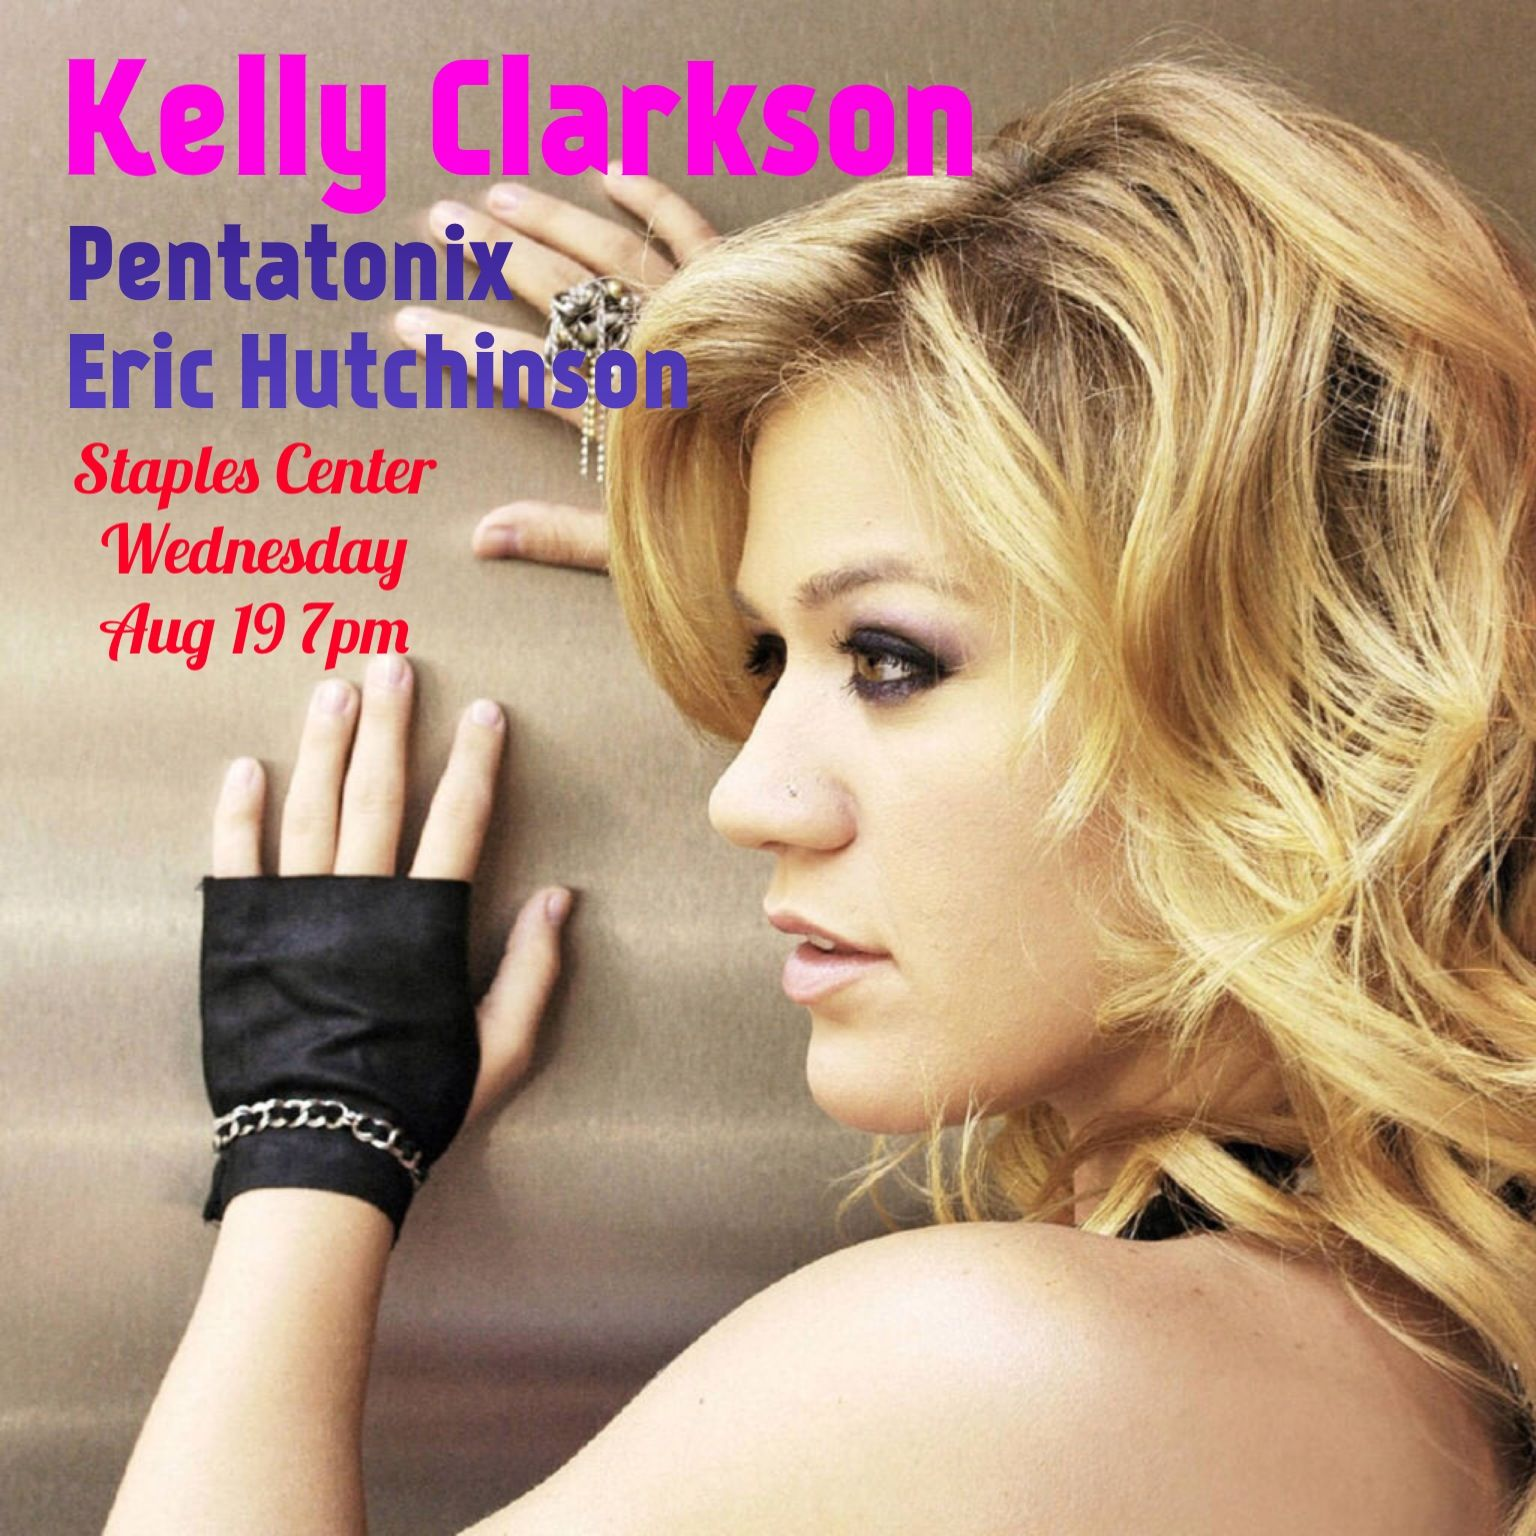 Kelly Clarkson Coming To Staples Center 8 19 15 Tickets On Sale Now Http Www Viptickets Com Viptickets Loose Curls Hairstyles Kelly Clarkson Hair Styles